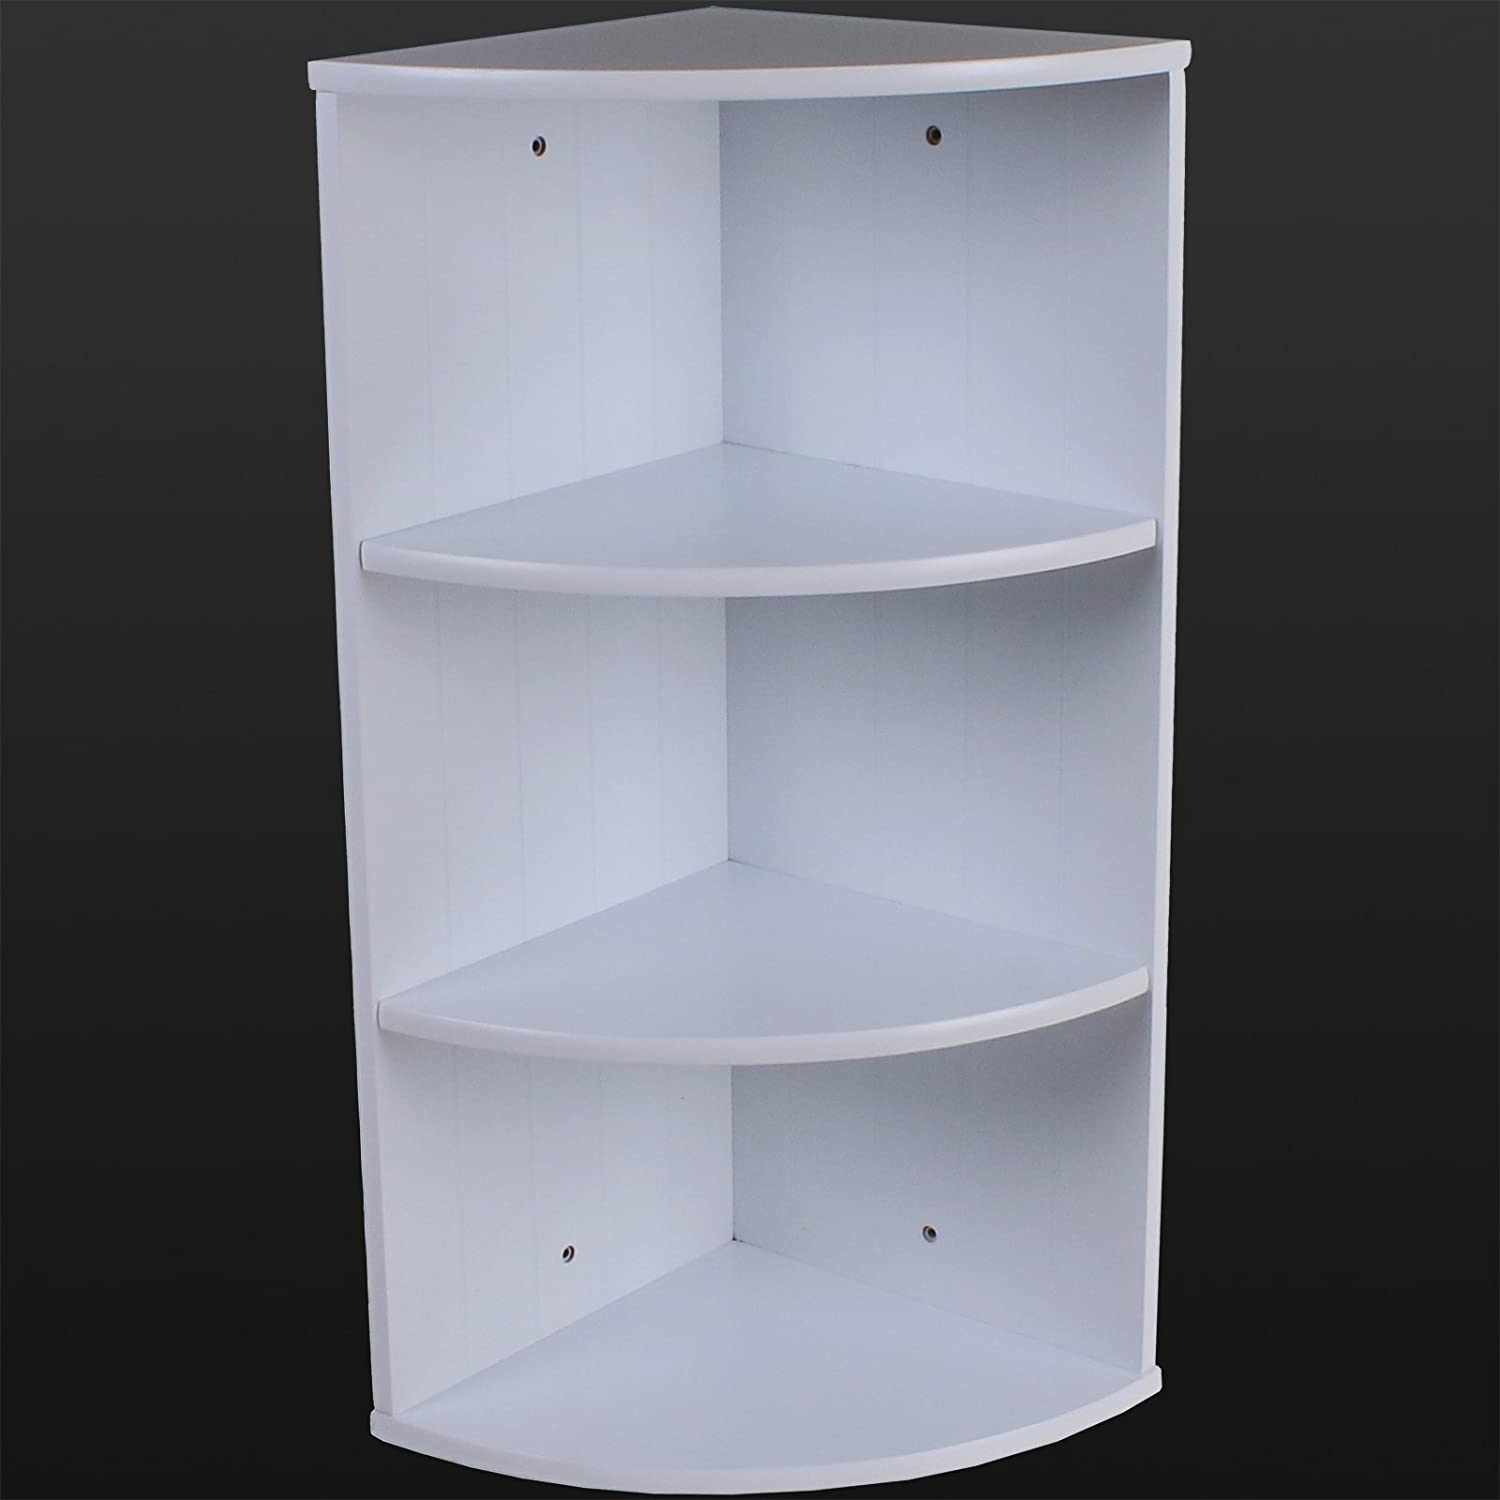 Marko Bathroom 3 Tier Corner Shelving Unit White Wooden Shelves